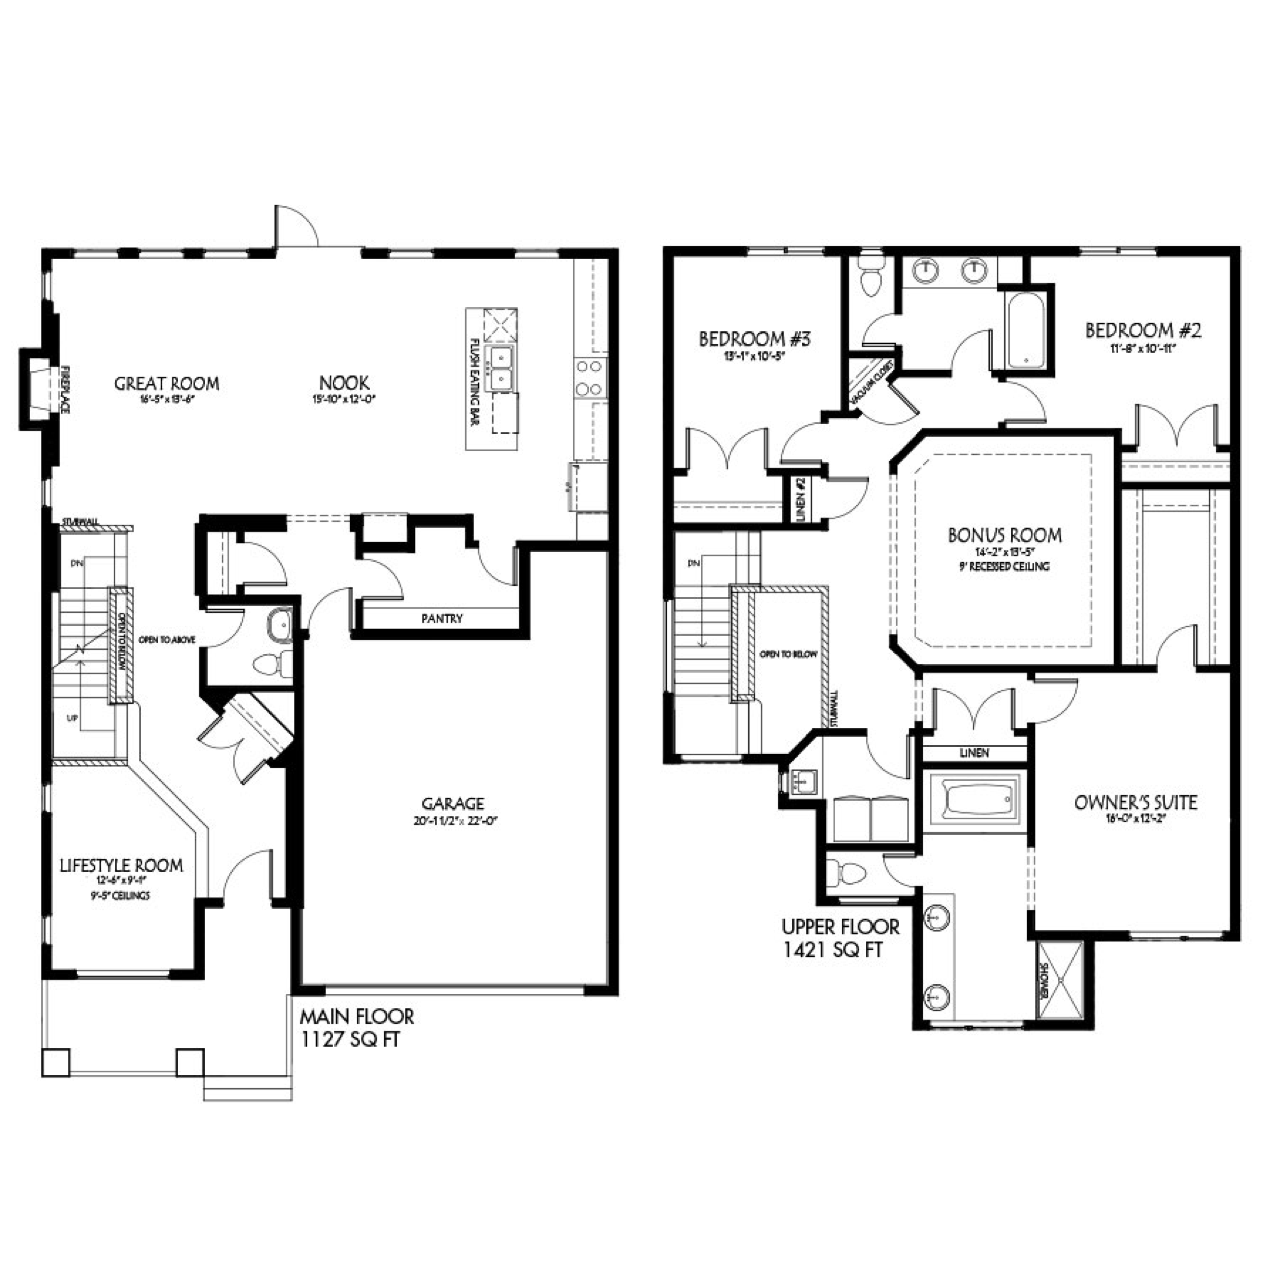 September 18th post - The Latest Quick Possession Homes From Pacesetter Lexington Floorplan Image